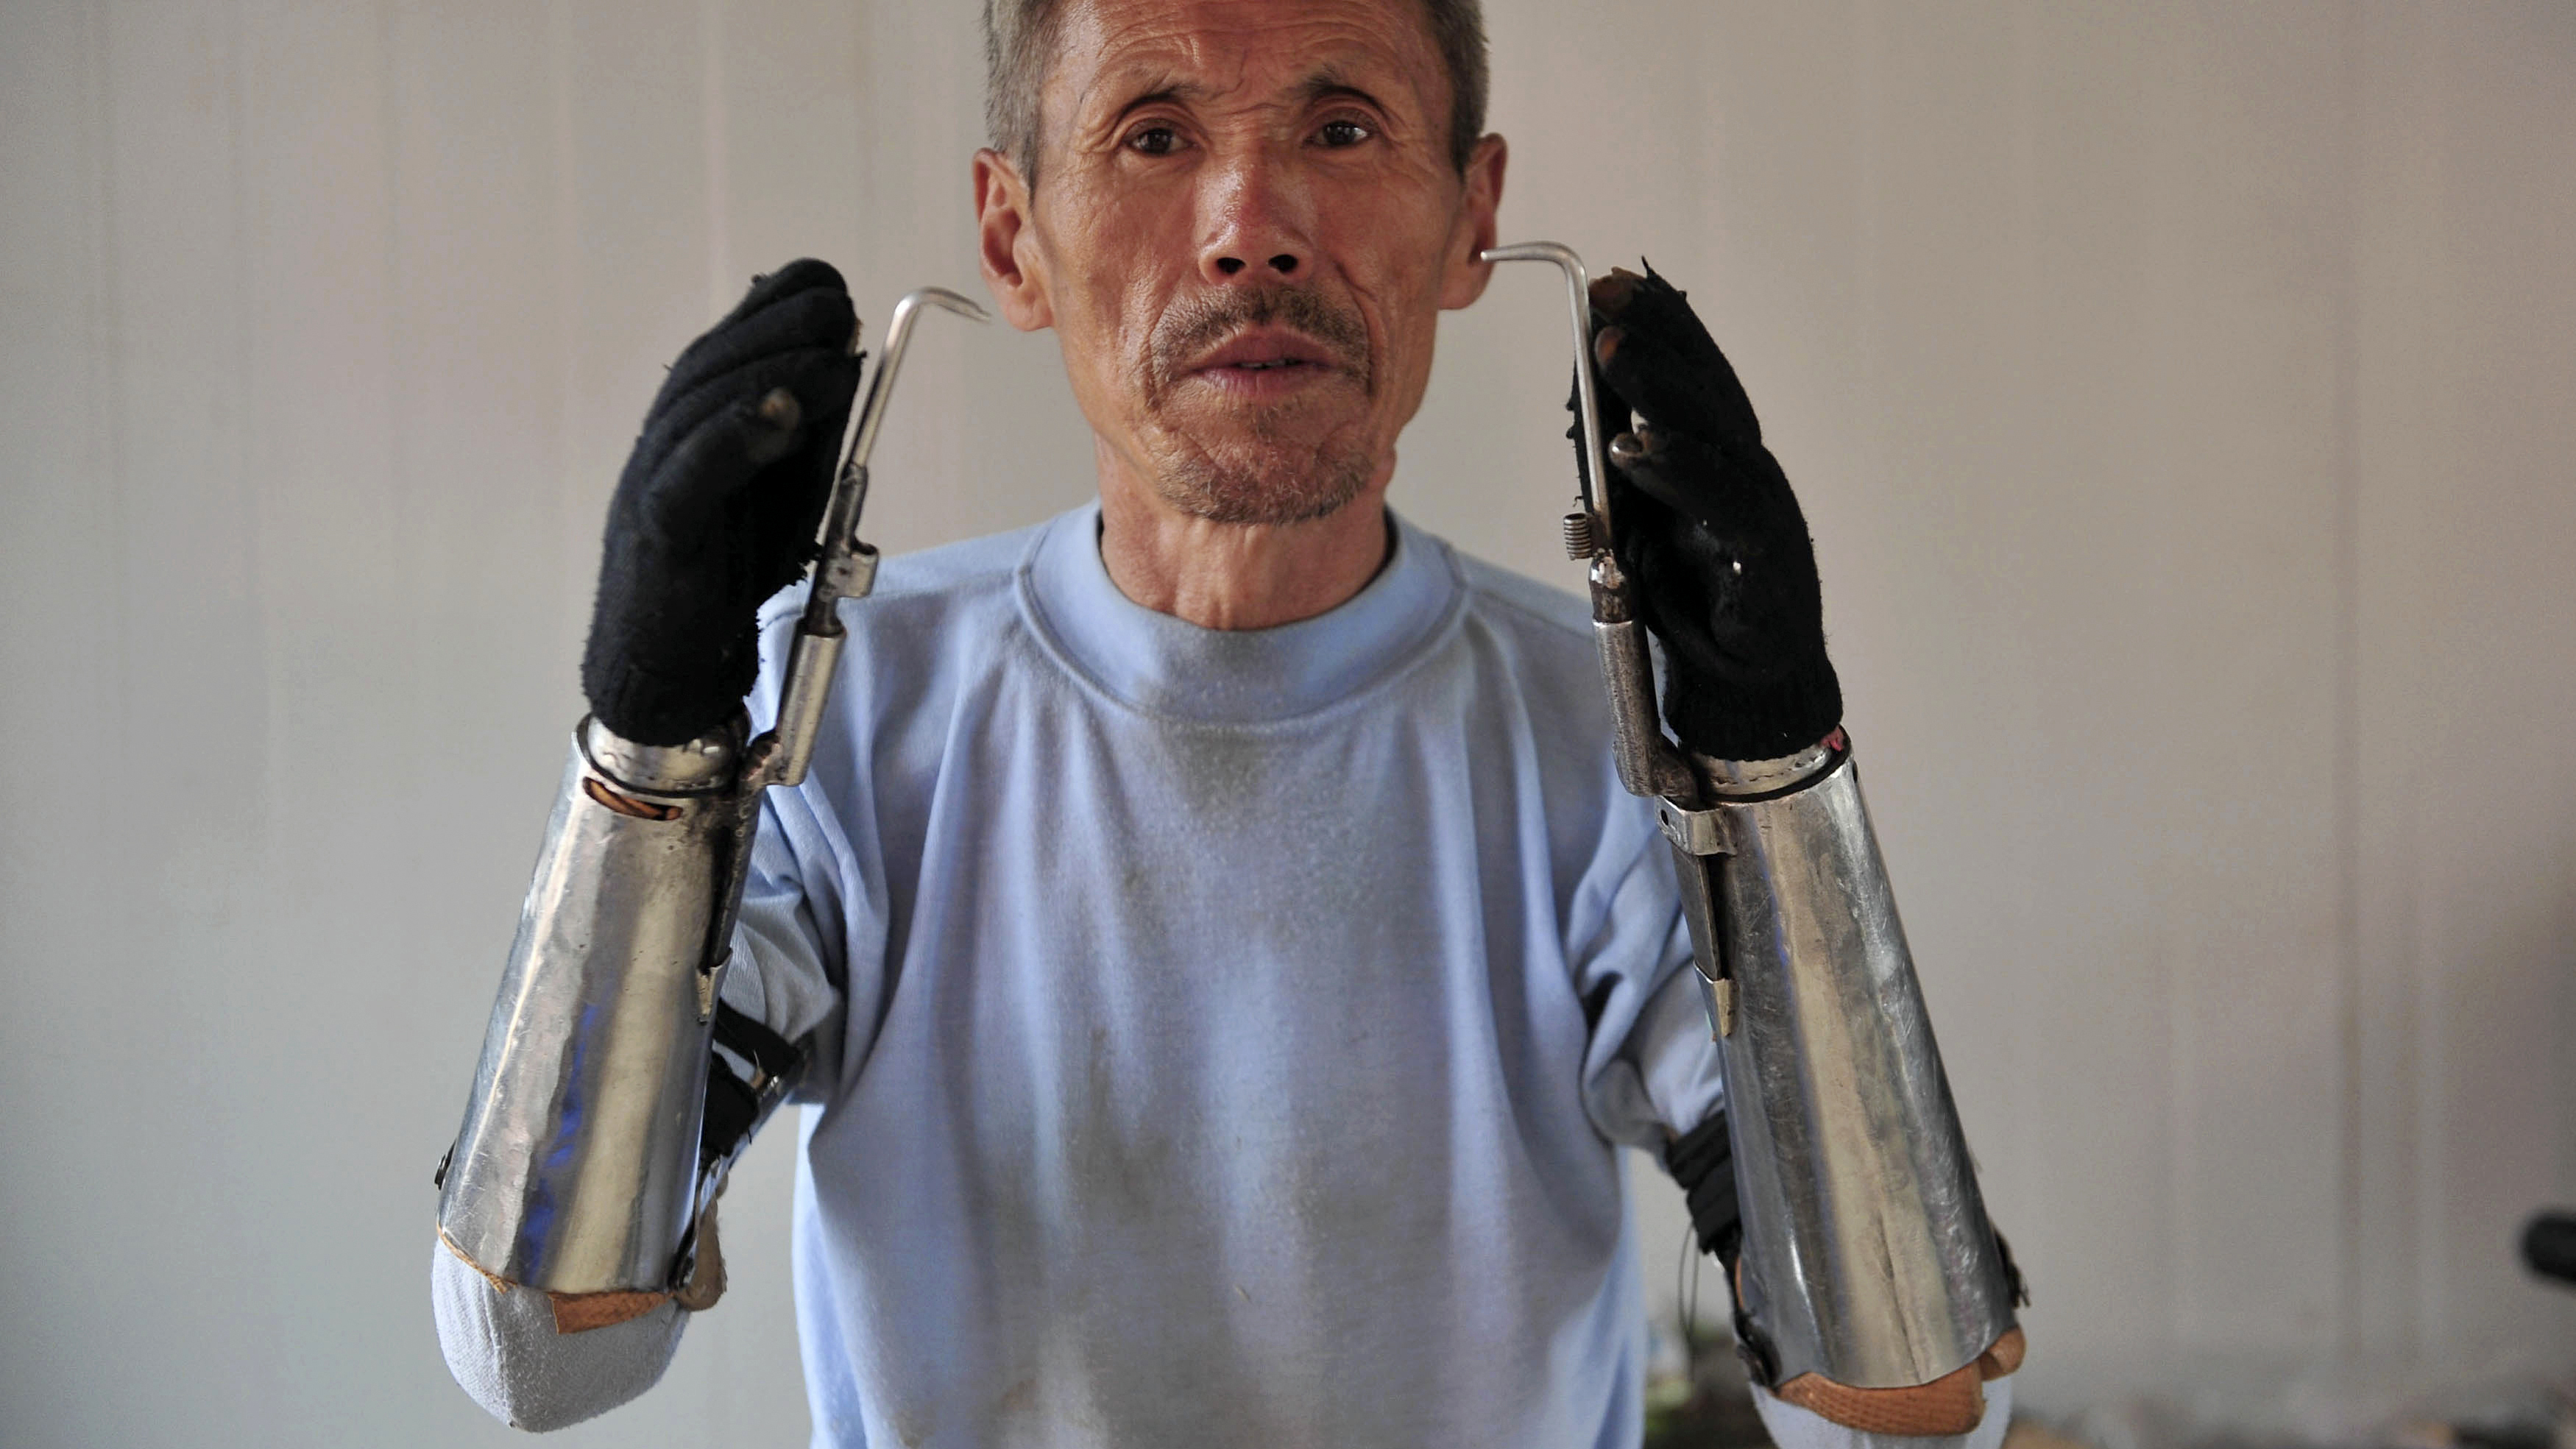 PHOTO: Sun Jifa raises up his prosthetic forearms as he poses for a picture in Yong Ji county, Jilin province, Sept. 25, 2012.